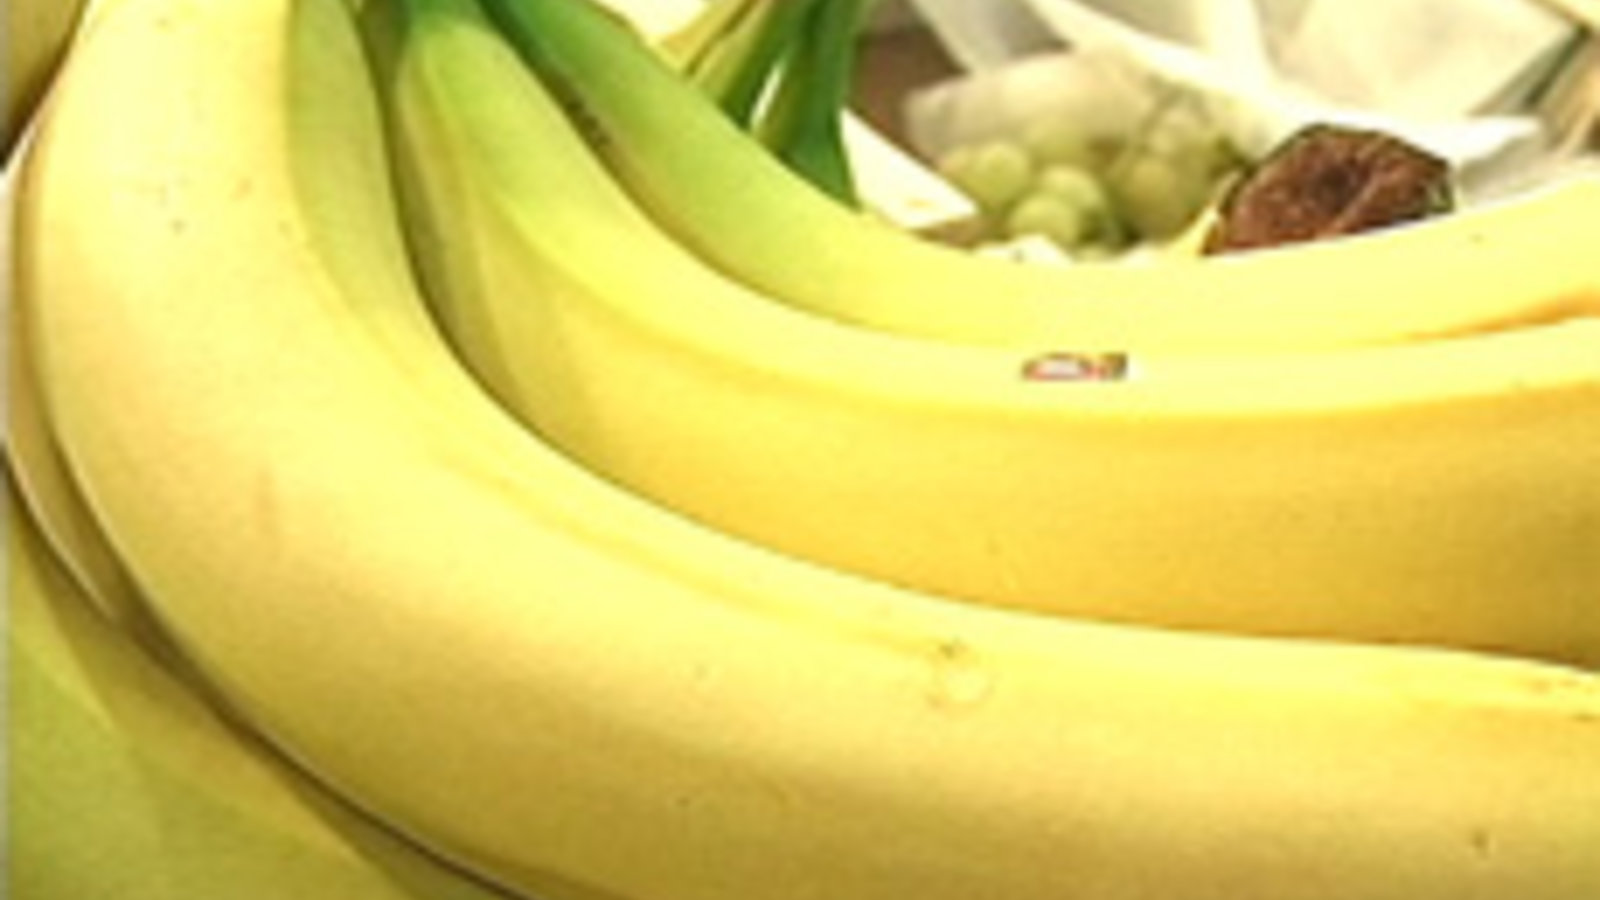 The Sad Story of the Banana - Dangers of Pesticide Abuse